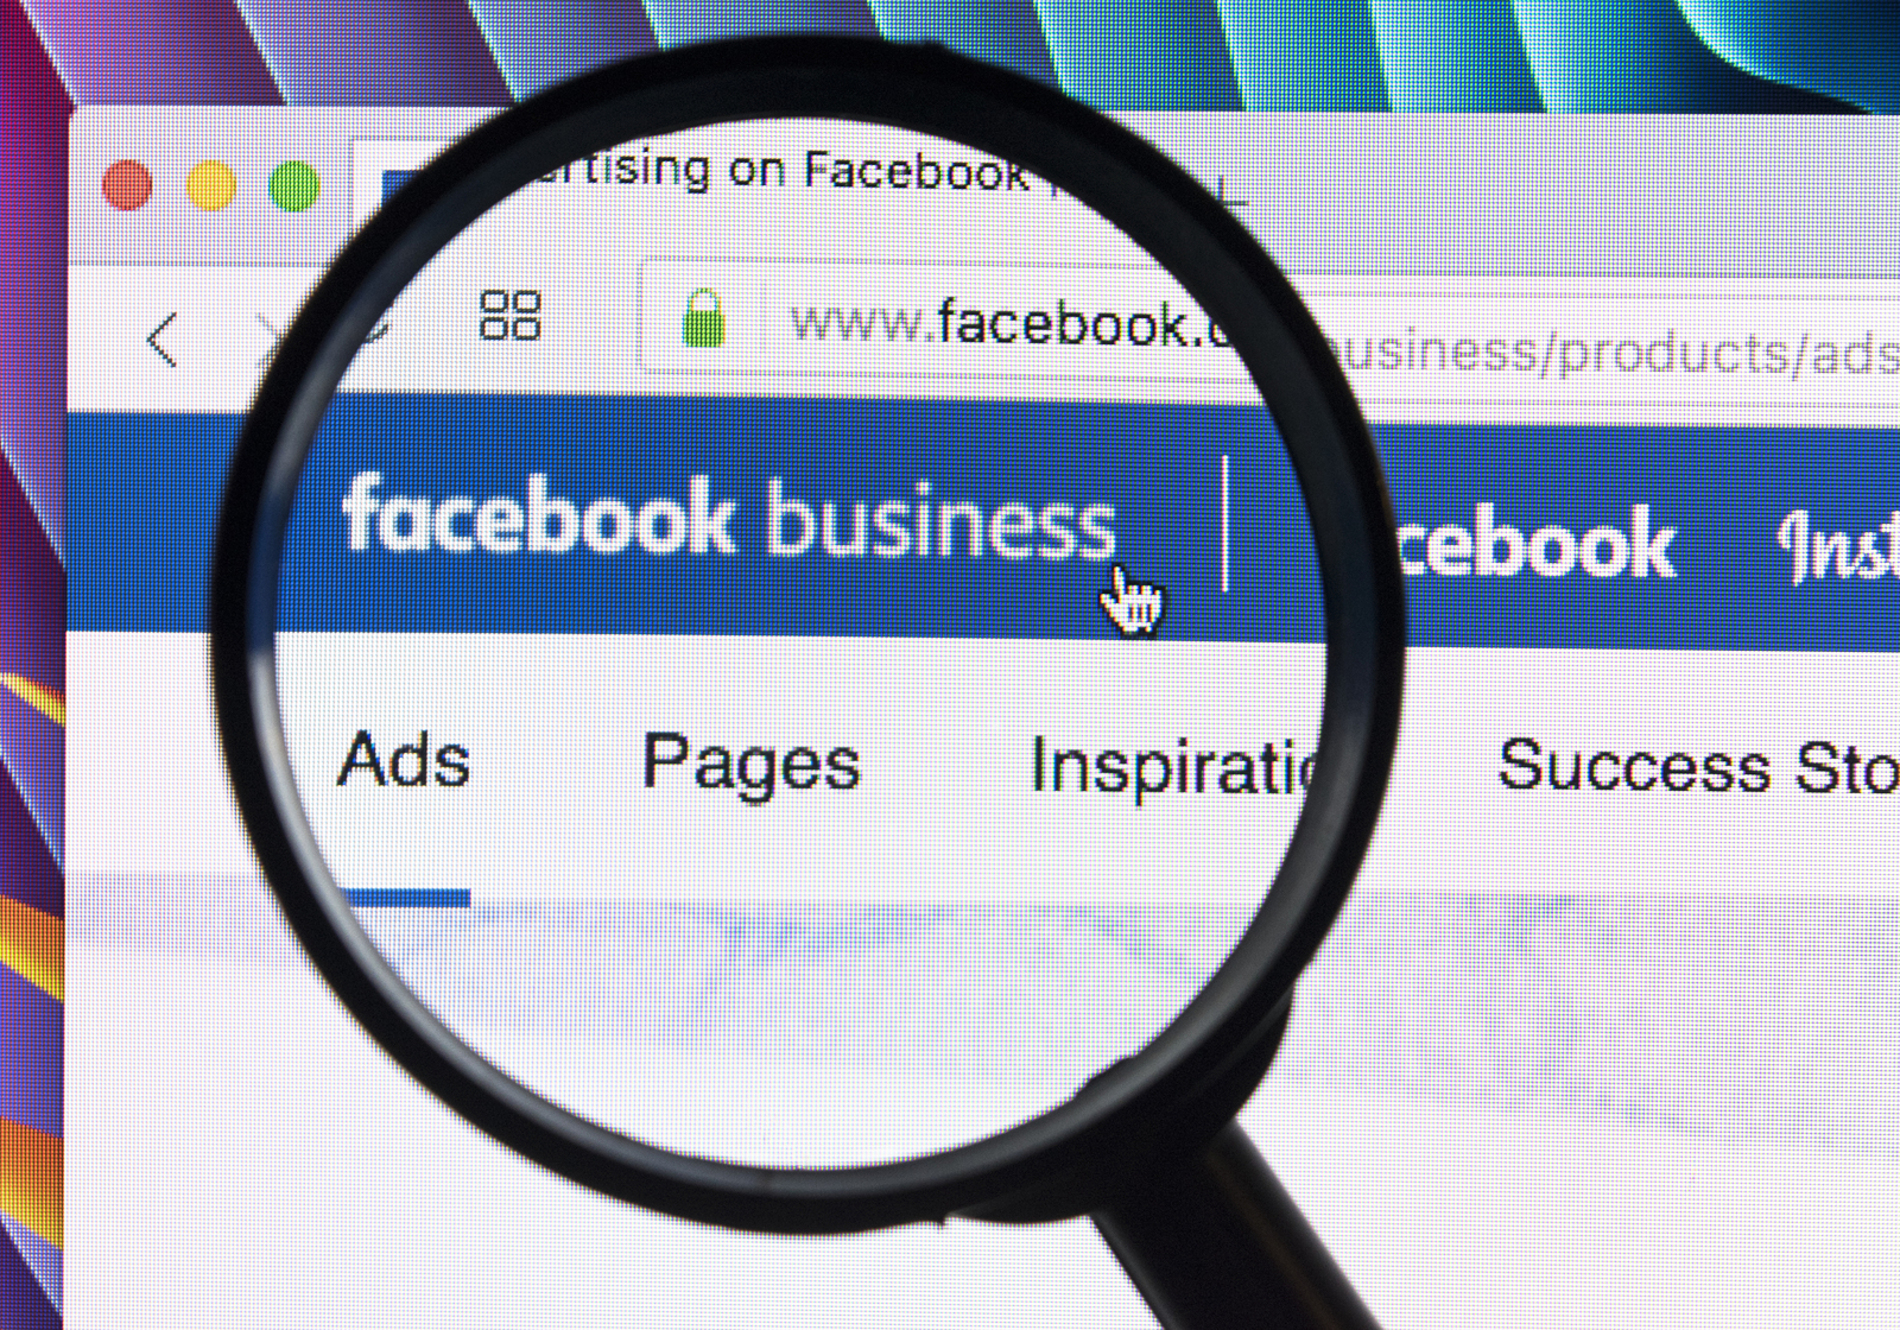 Facebook business home page on display.